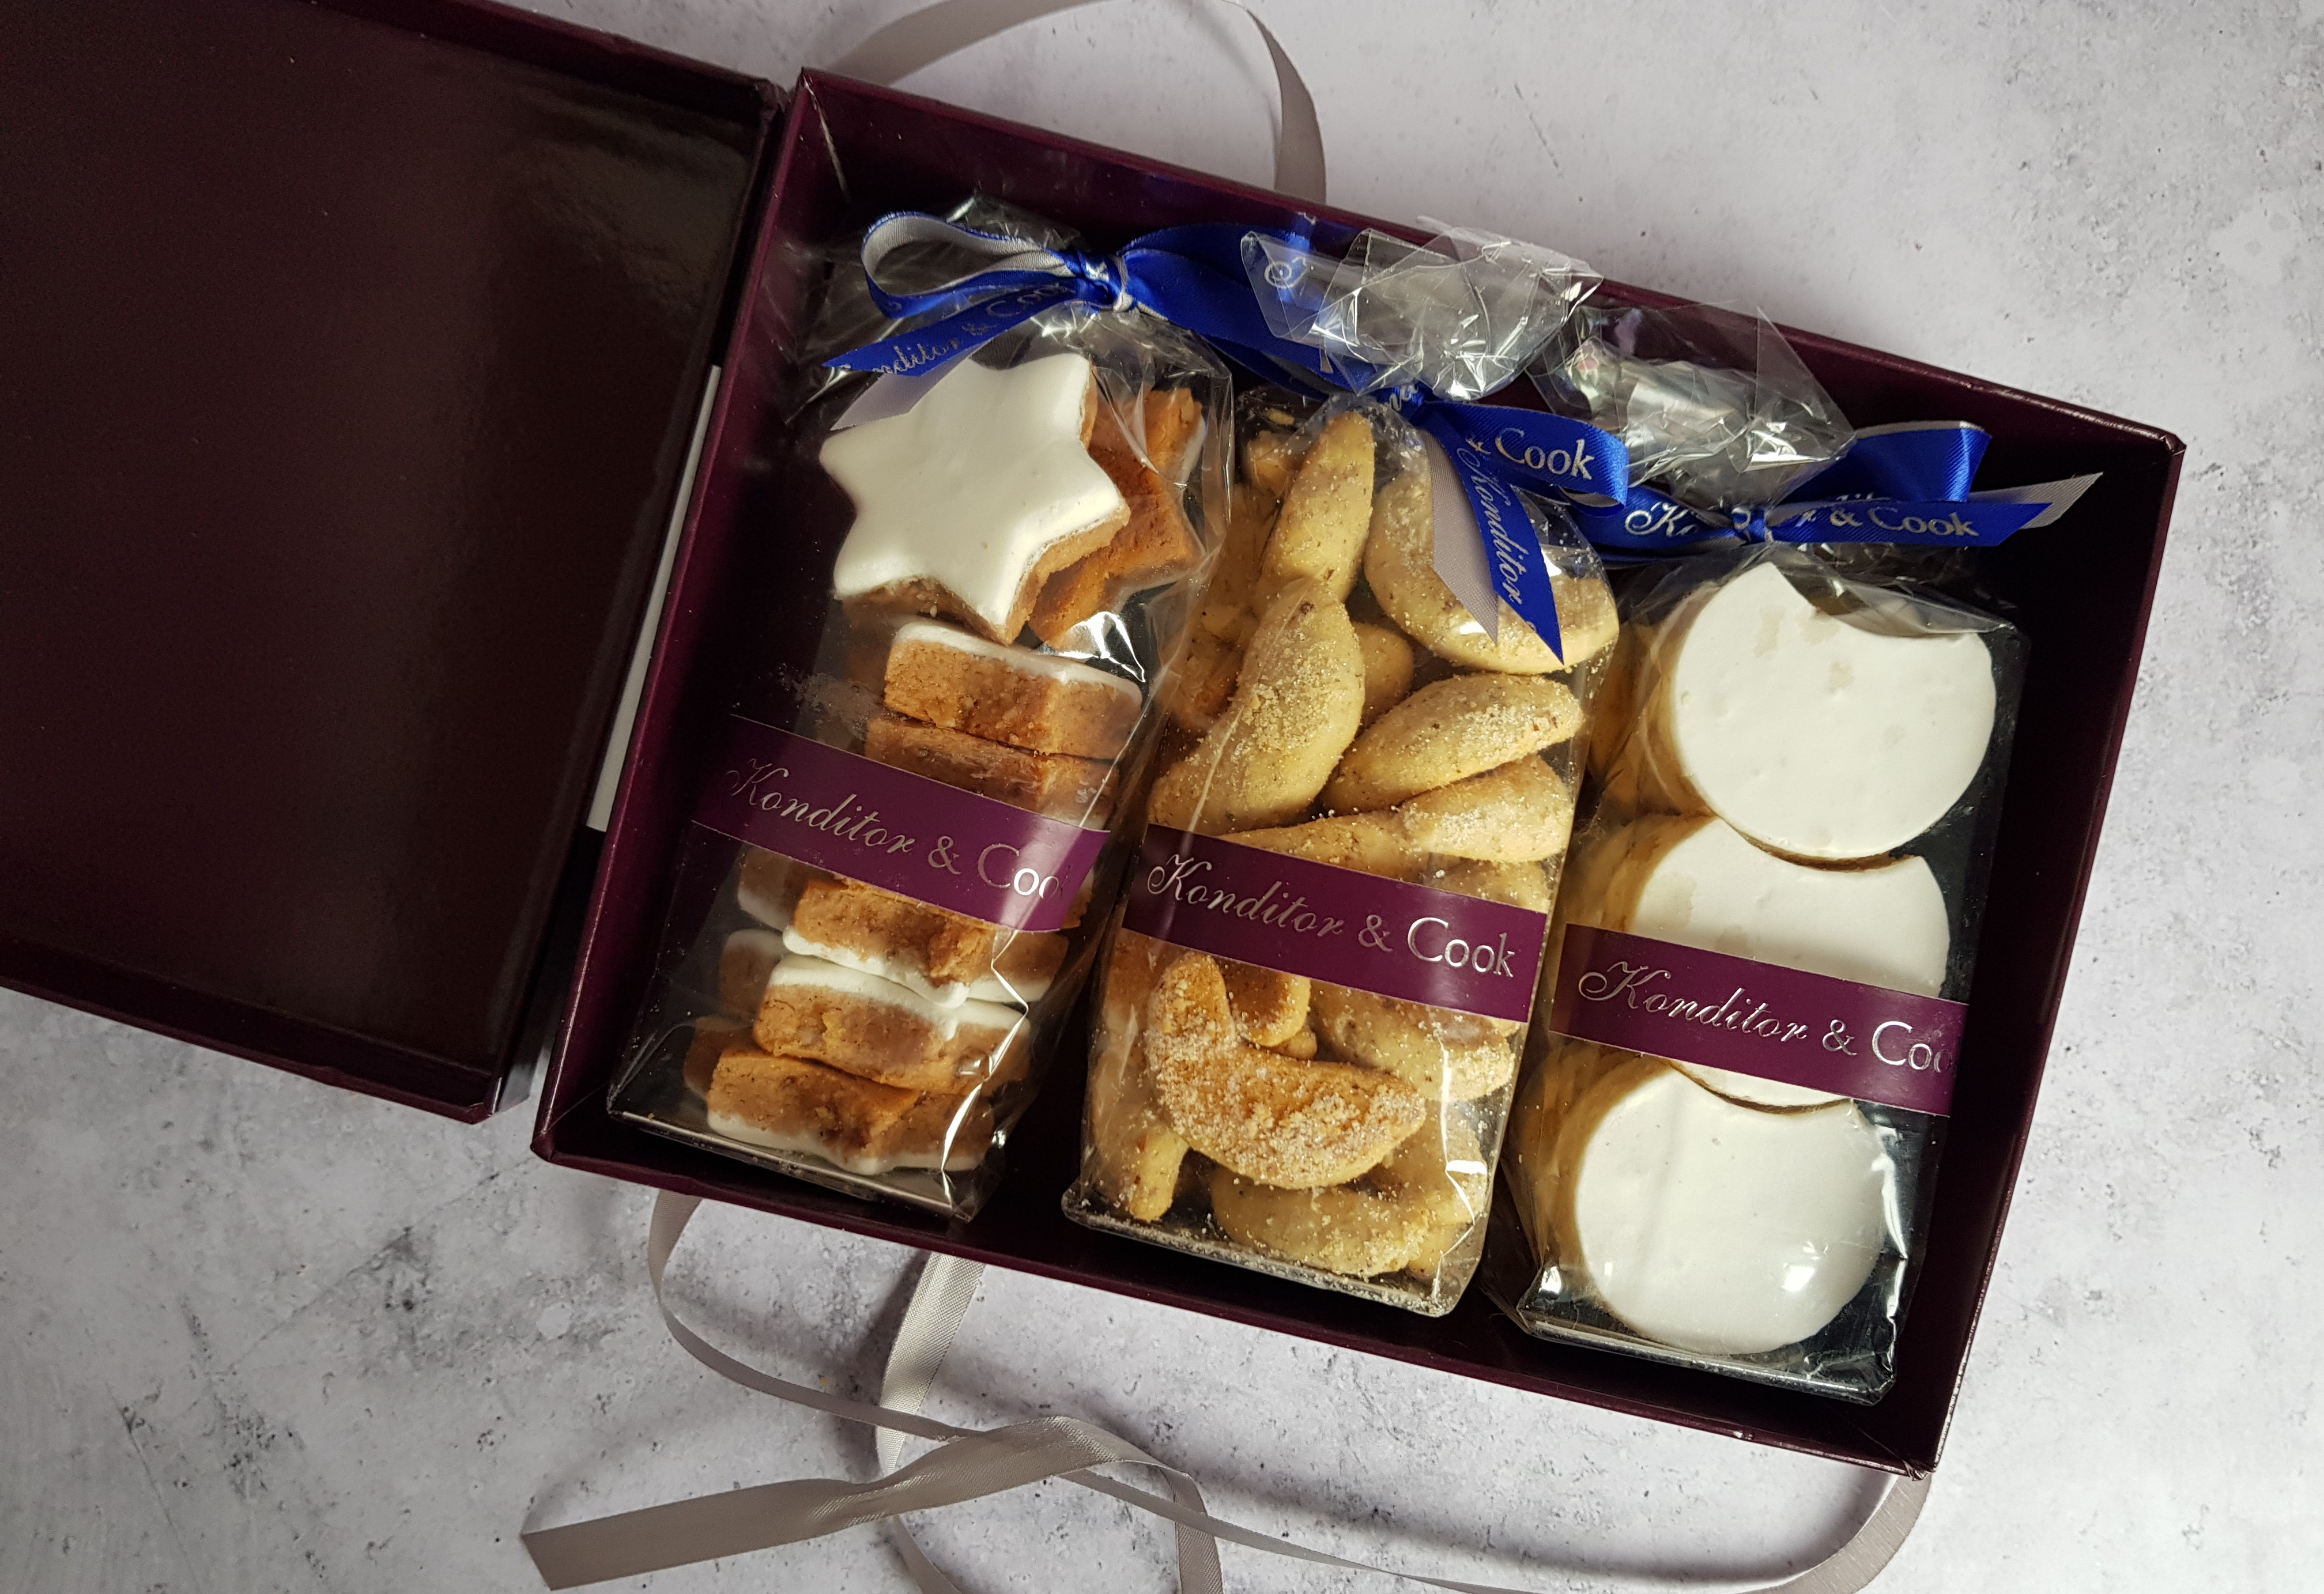 Konditor & Cook gift box open